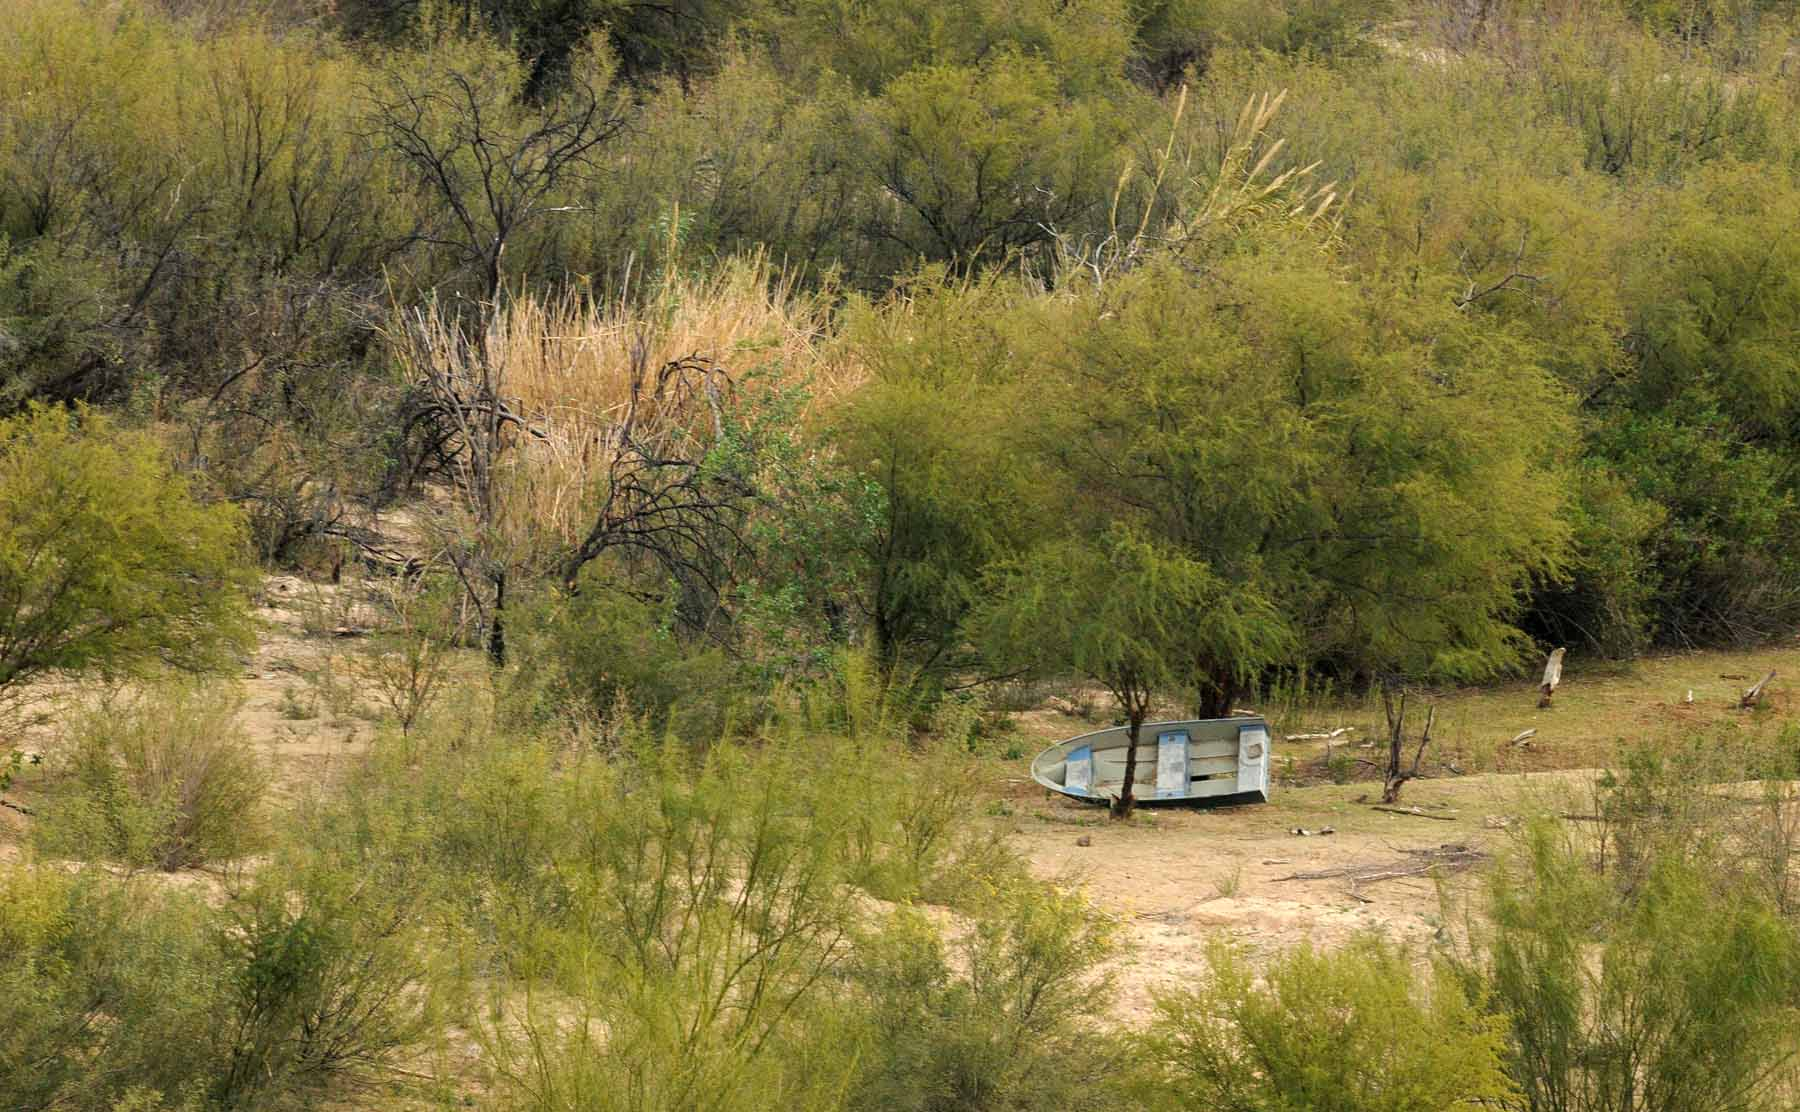 Smuggler boat laying in wait under trees in Mexico near Rio Grande River. Javi used an used tire raft to come across. Photo: Tony Carnes/A Journey through NYC religions